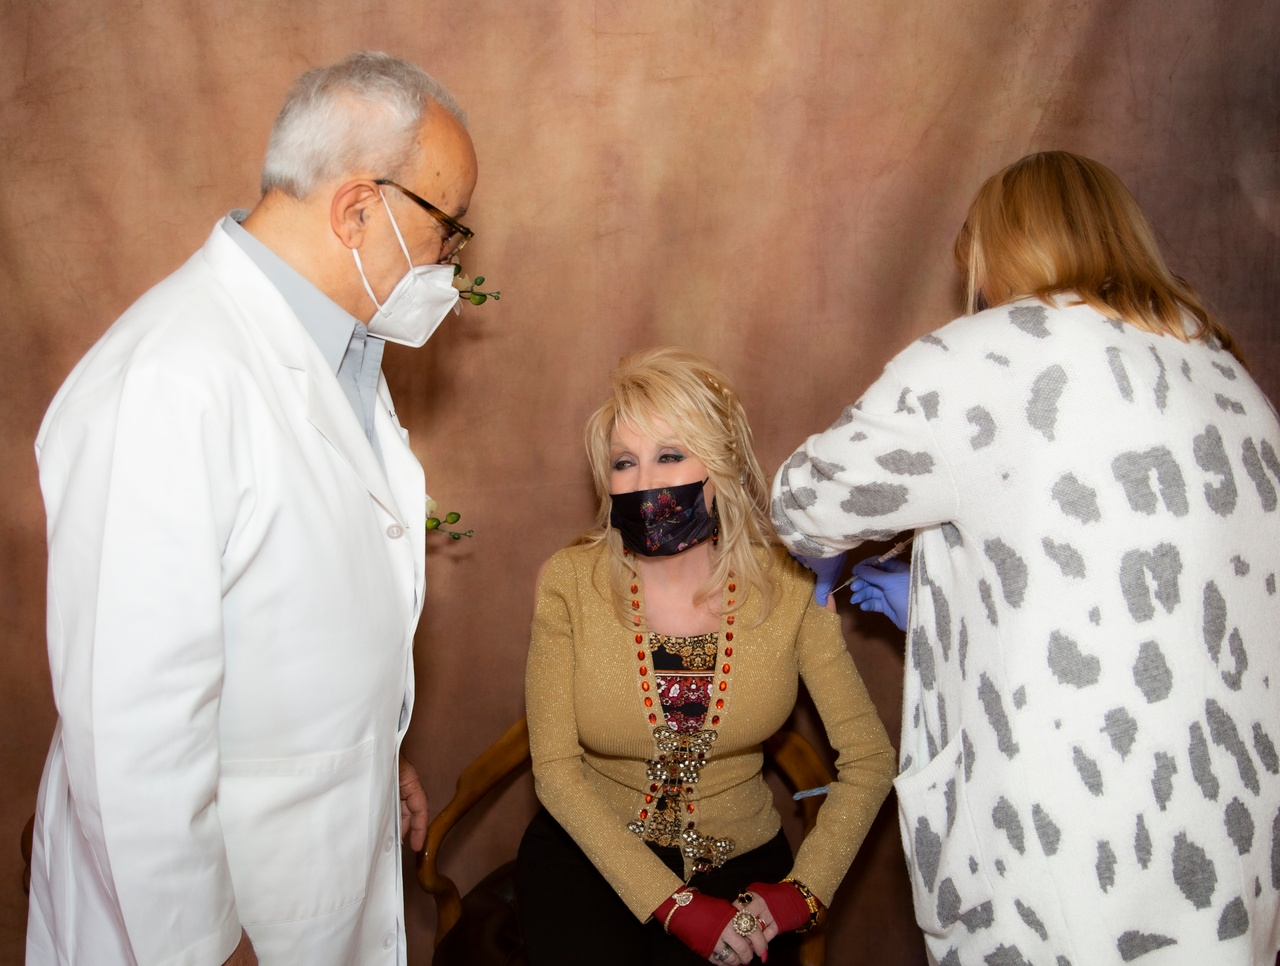 Dolly Parton receives 2nd dose of COVID-19 Moderna vaccine